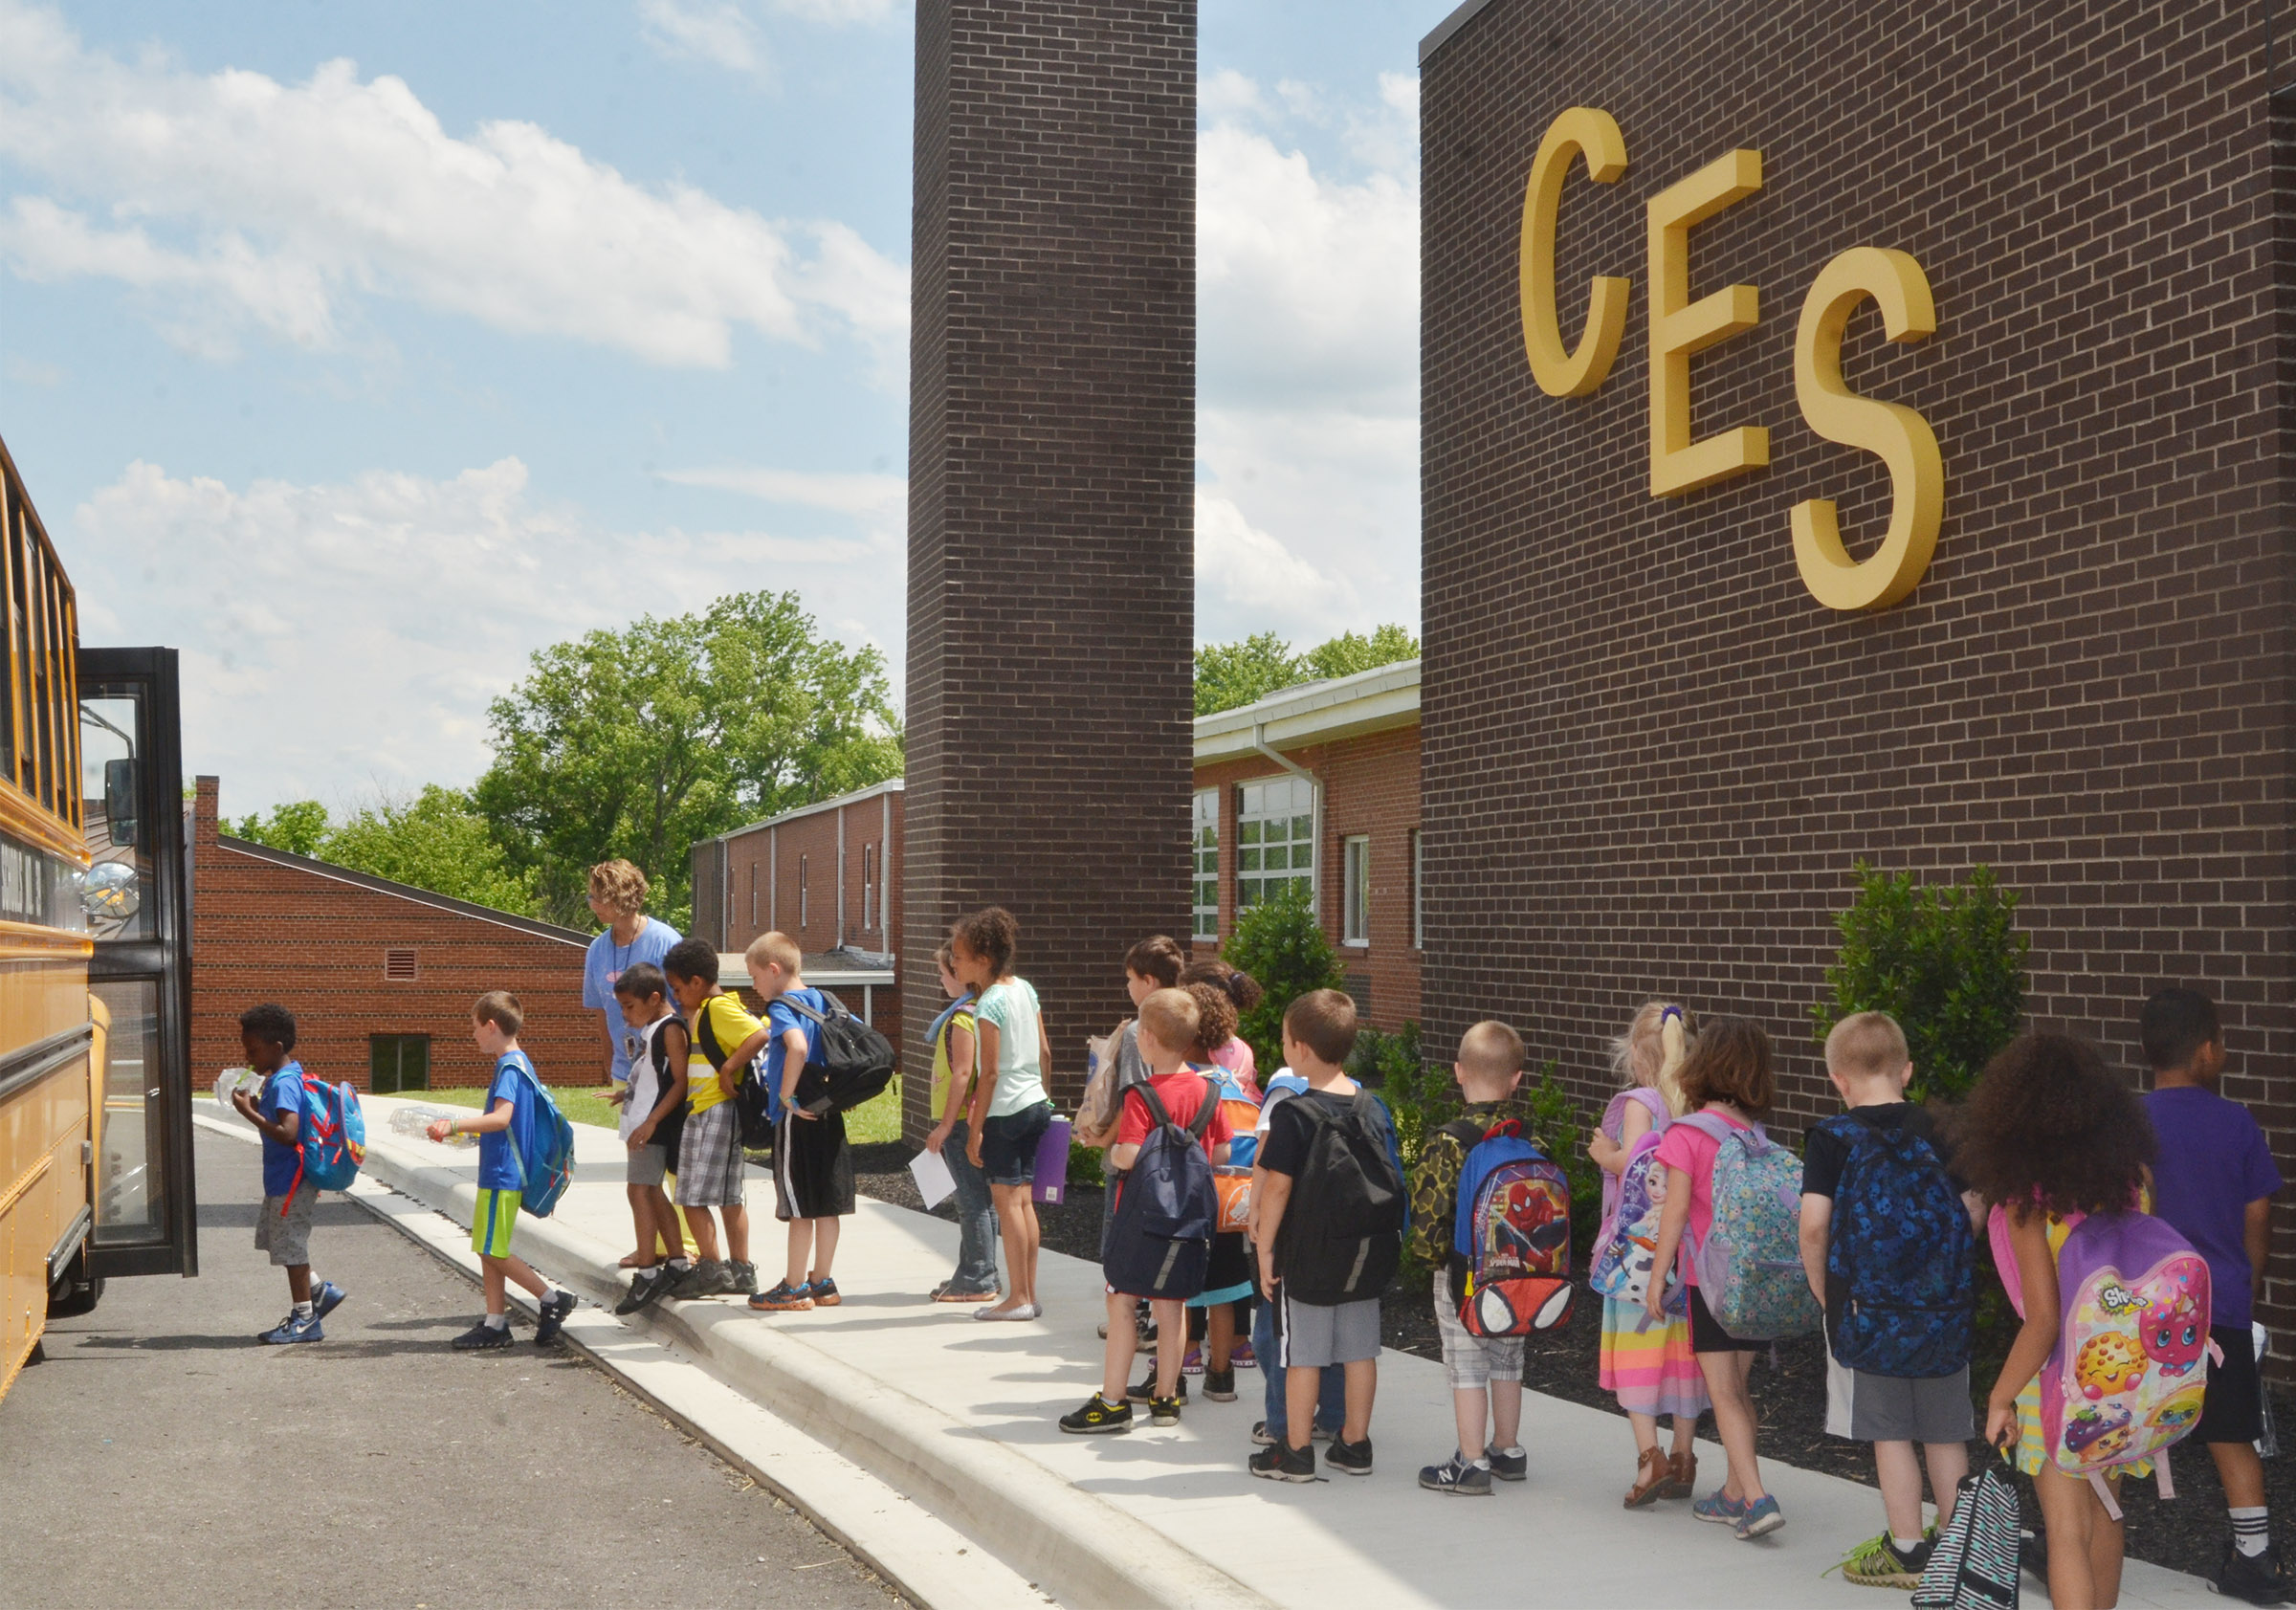 CES students board the bus after the school day ends.